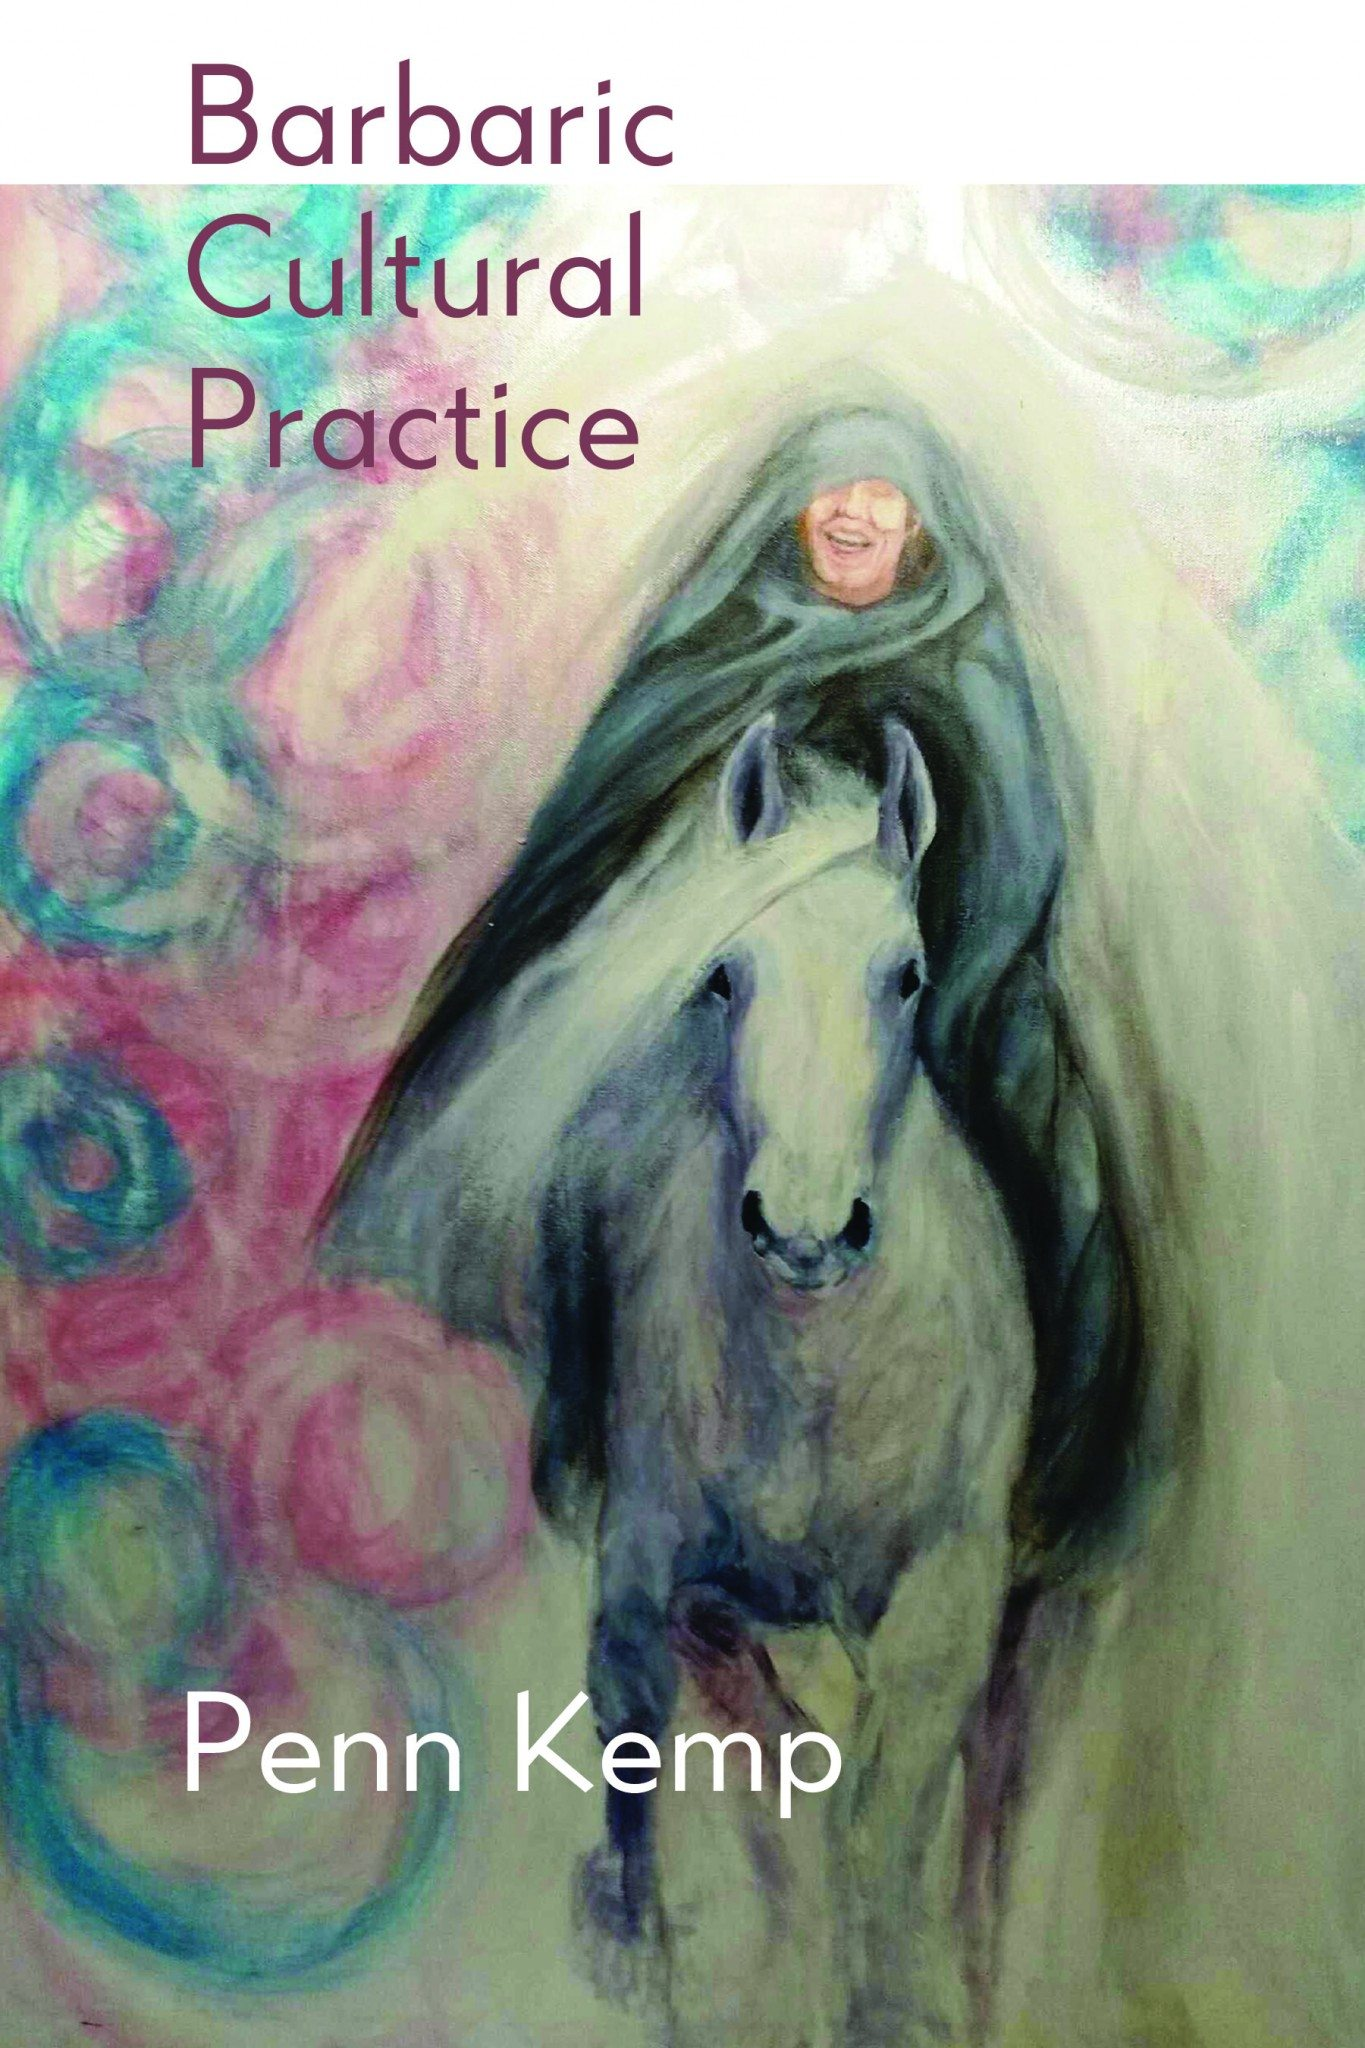 Barbaric Cultural Practice_front cover